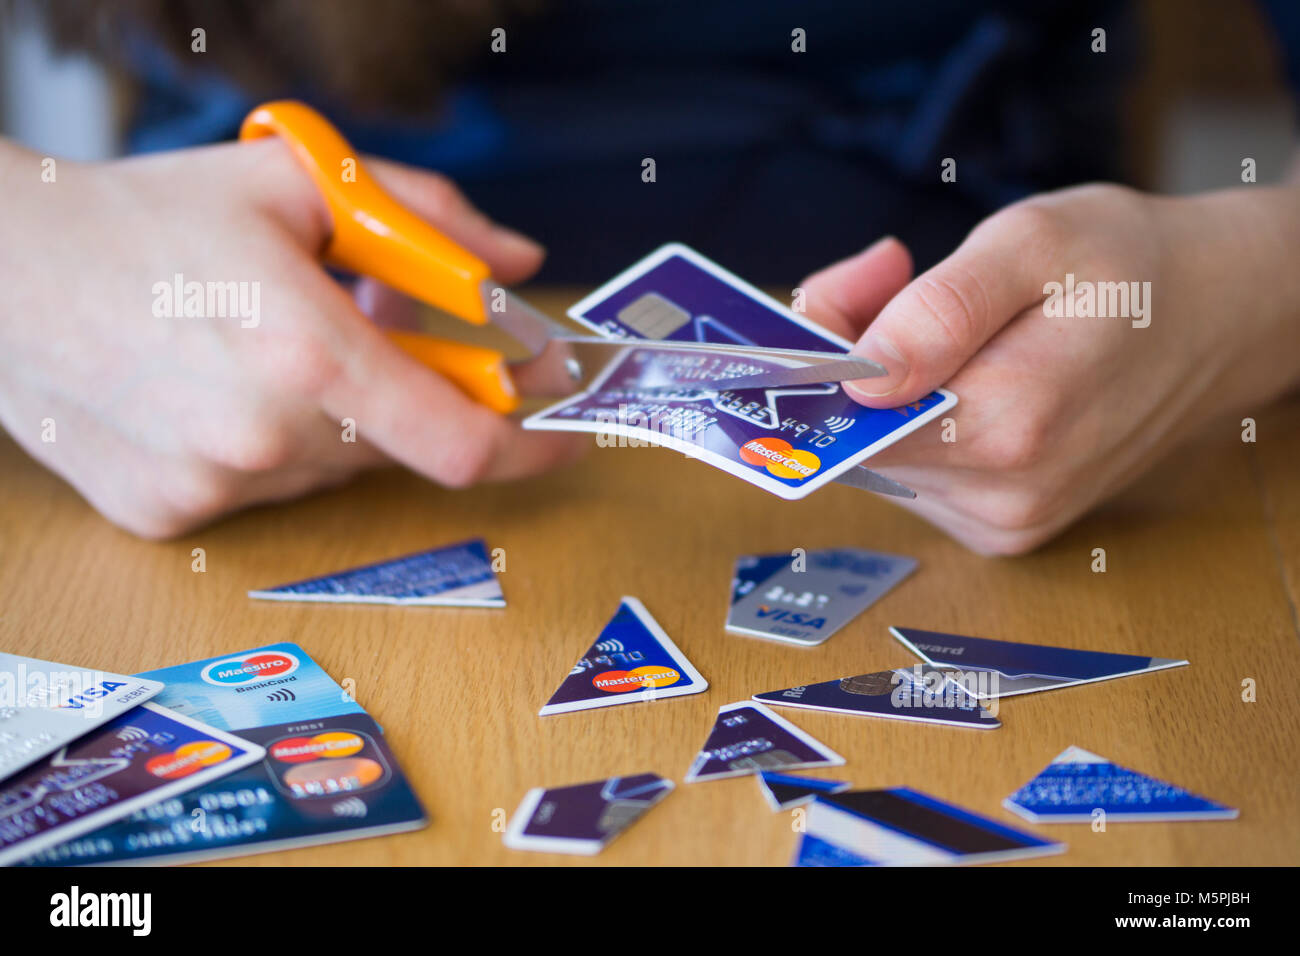 A woman cutting up credit cards - credit card debt concept - Stock Image